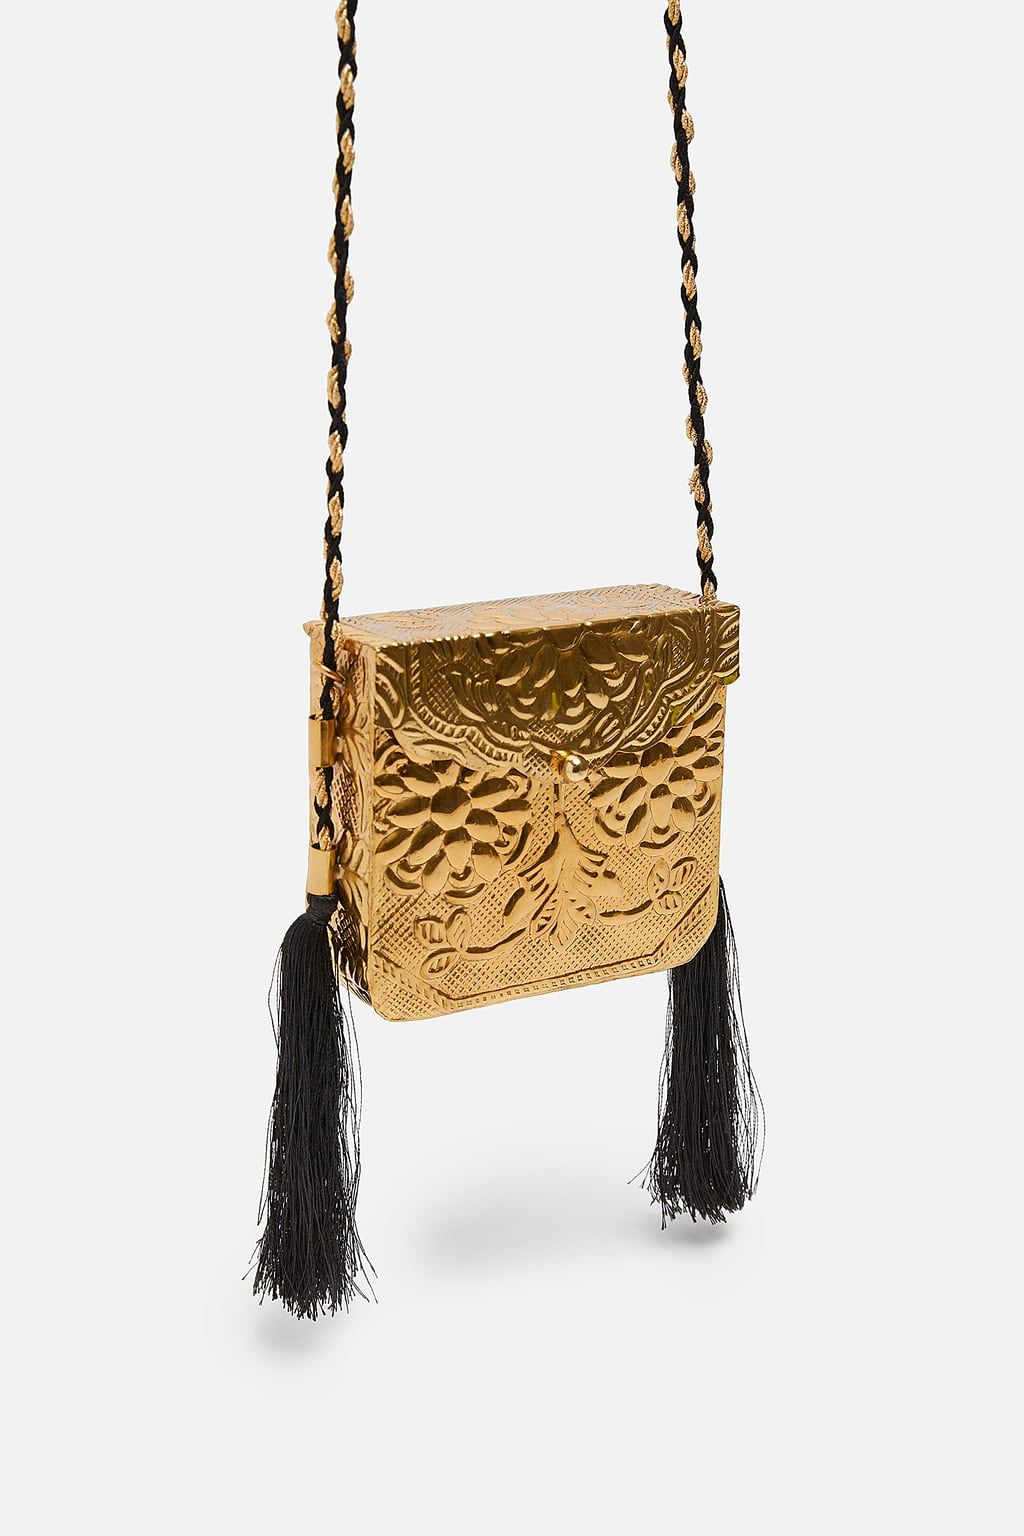 6b1b4ac21d Special edition carved gold bag in 2019 | sparklings | Gold handbags ...